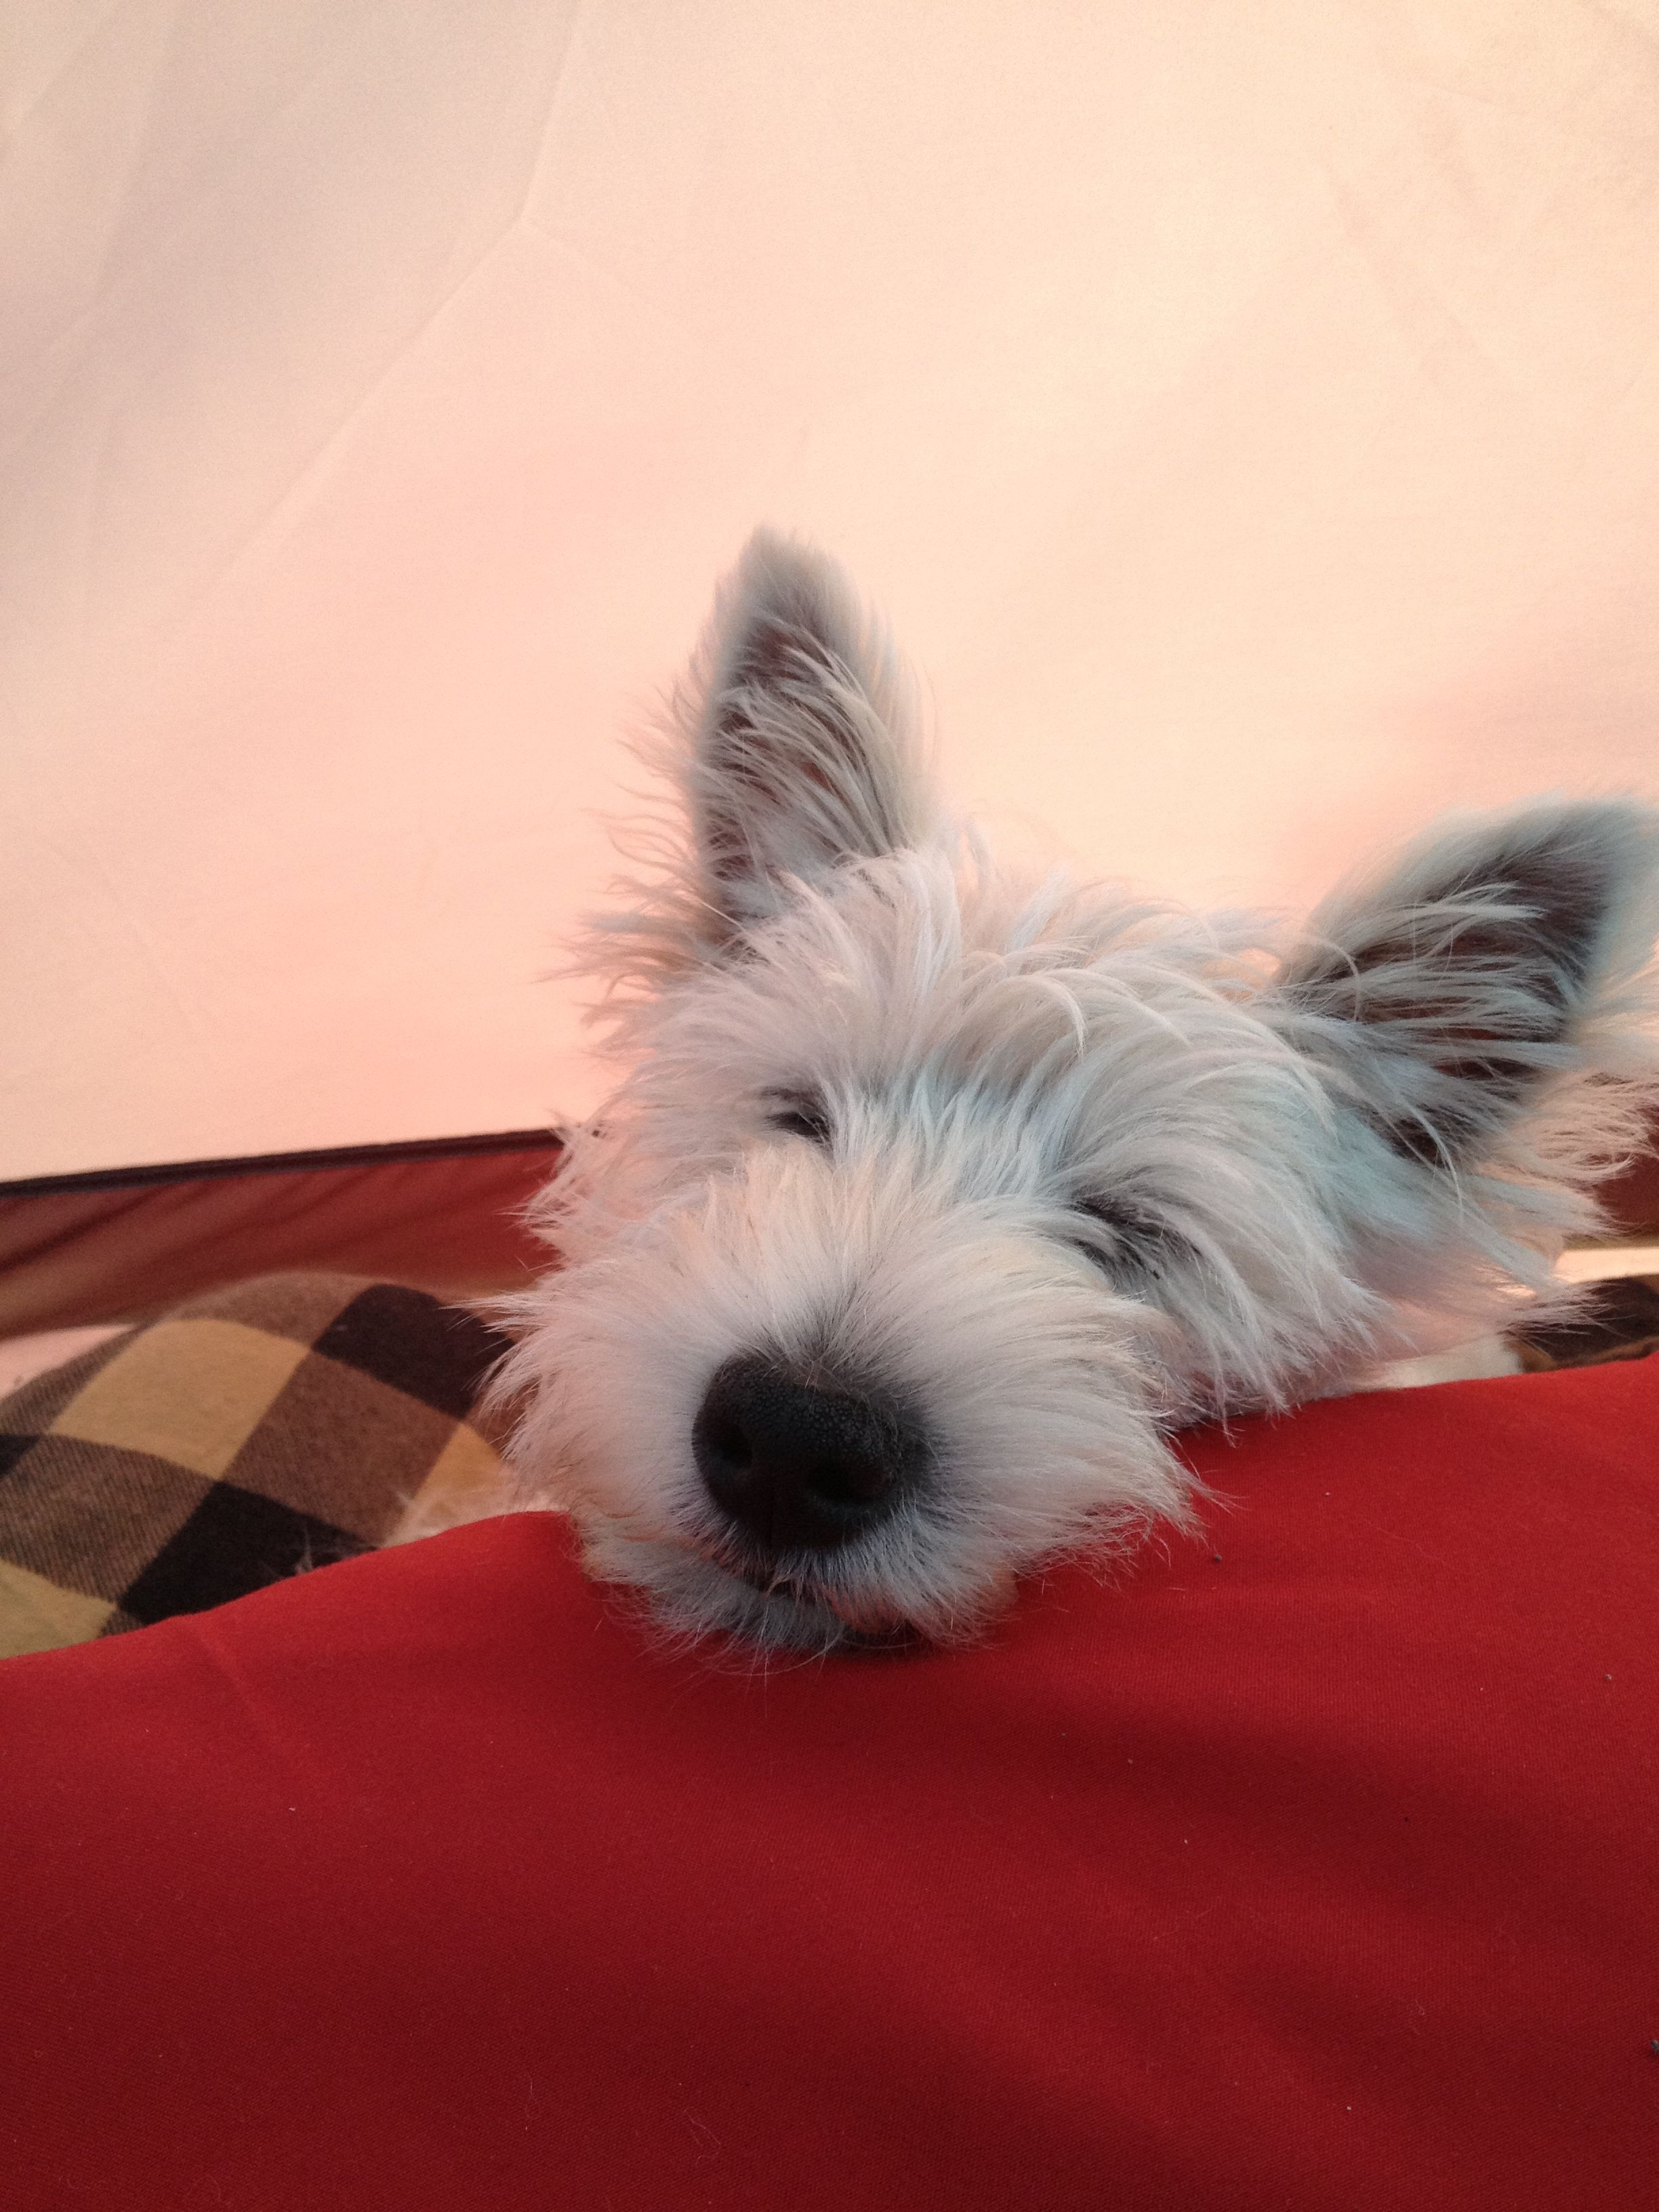 Zoey resting after busy day. Westie